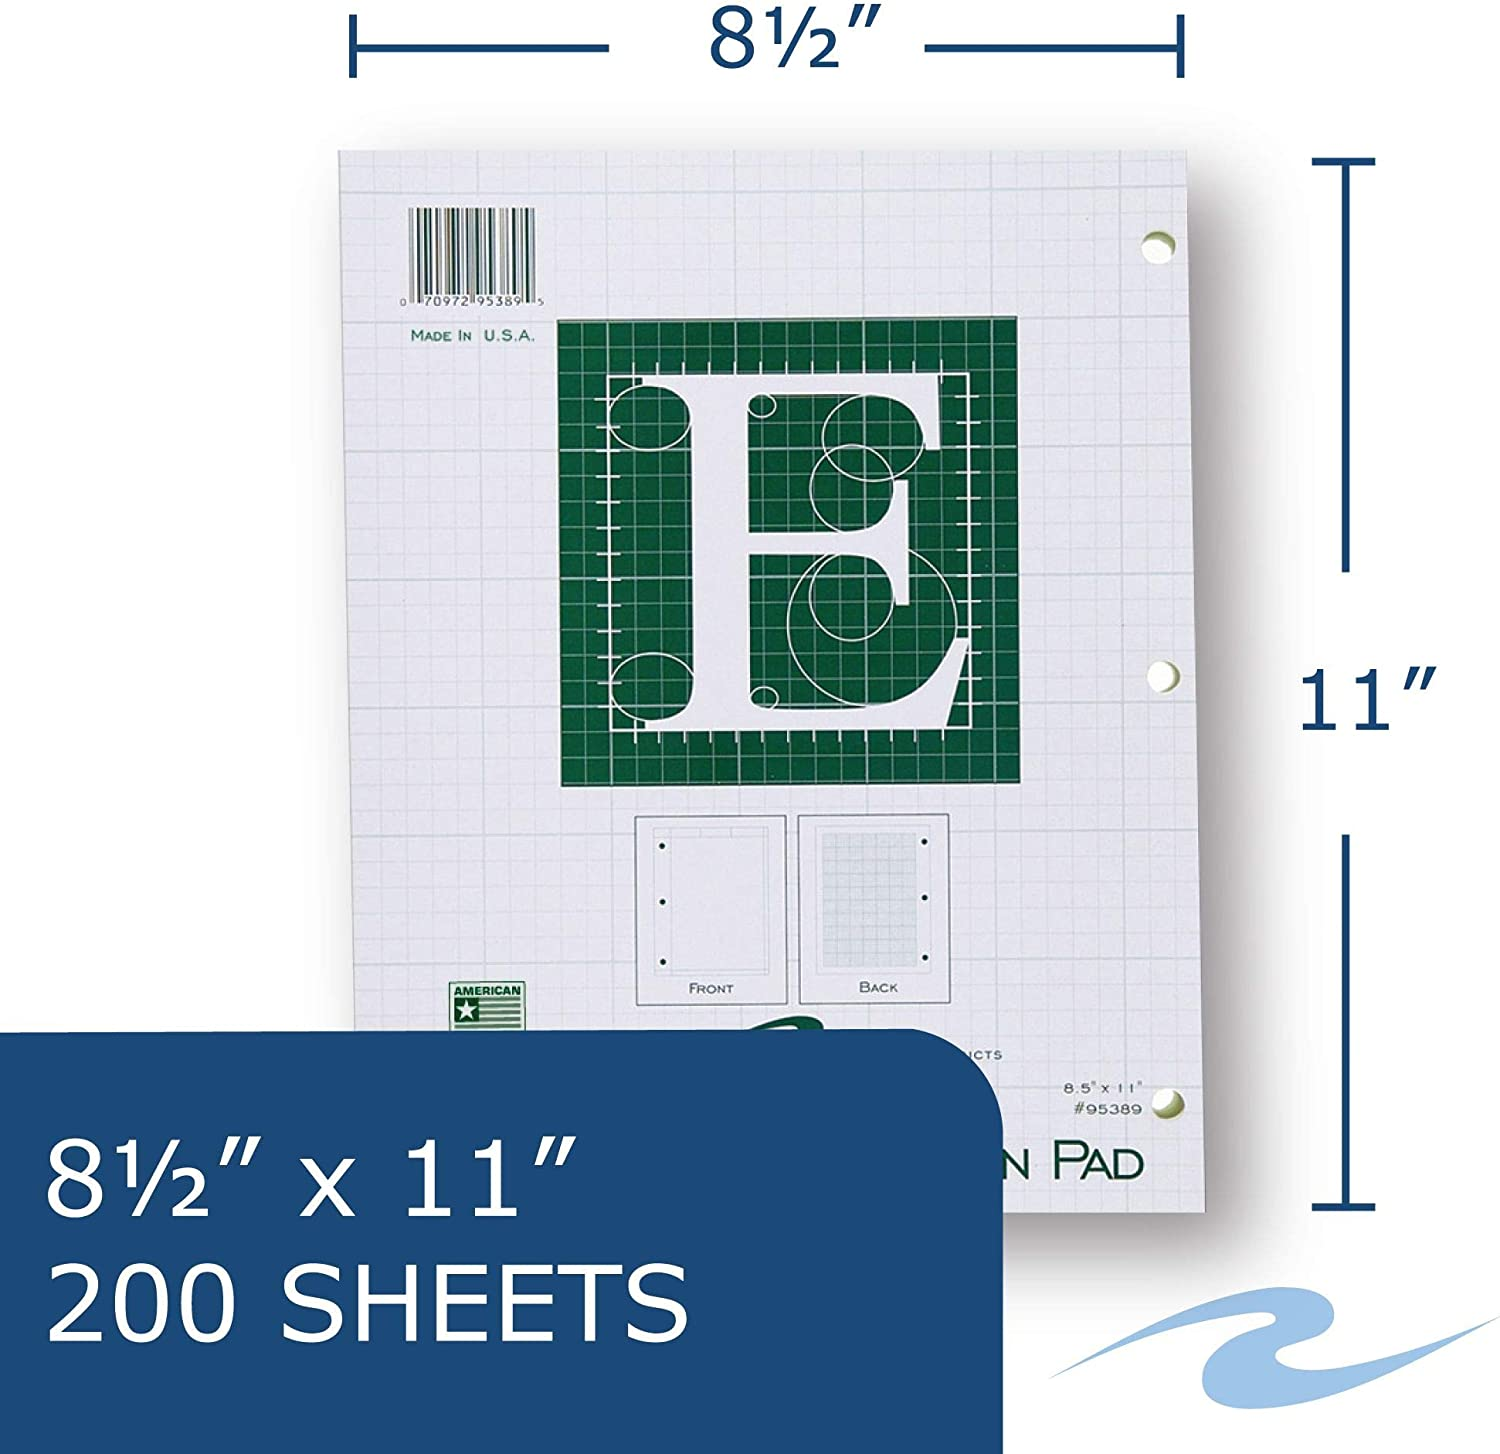 Extra Heavy Backing 8.5x11 5x5 printed Grid 200 sheets of 16# Green tint Paper 95389cs1 3-Hole Punched Roaring Spring Paper Products Case of 24 Engineer Pads